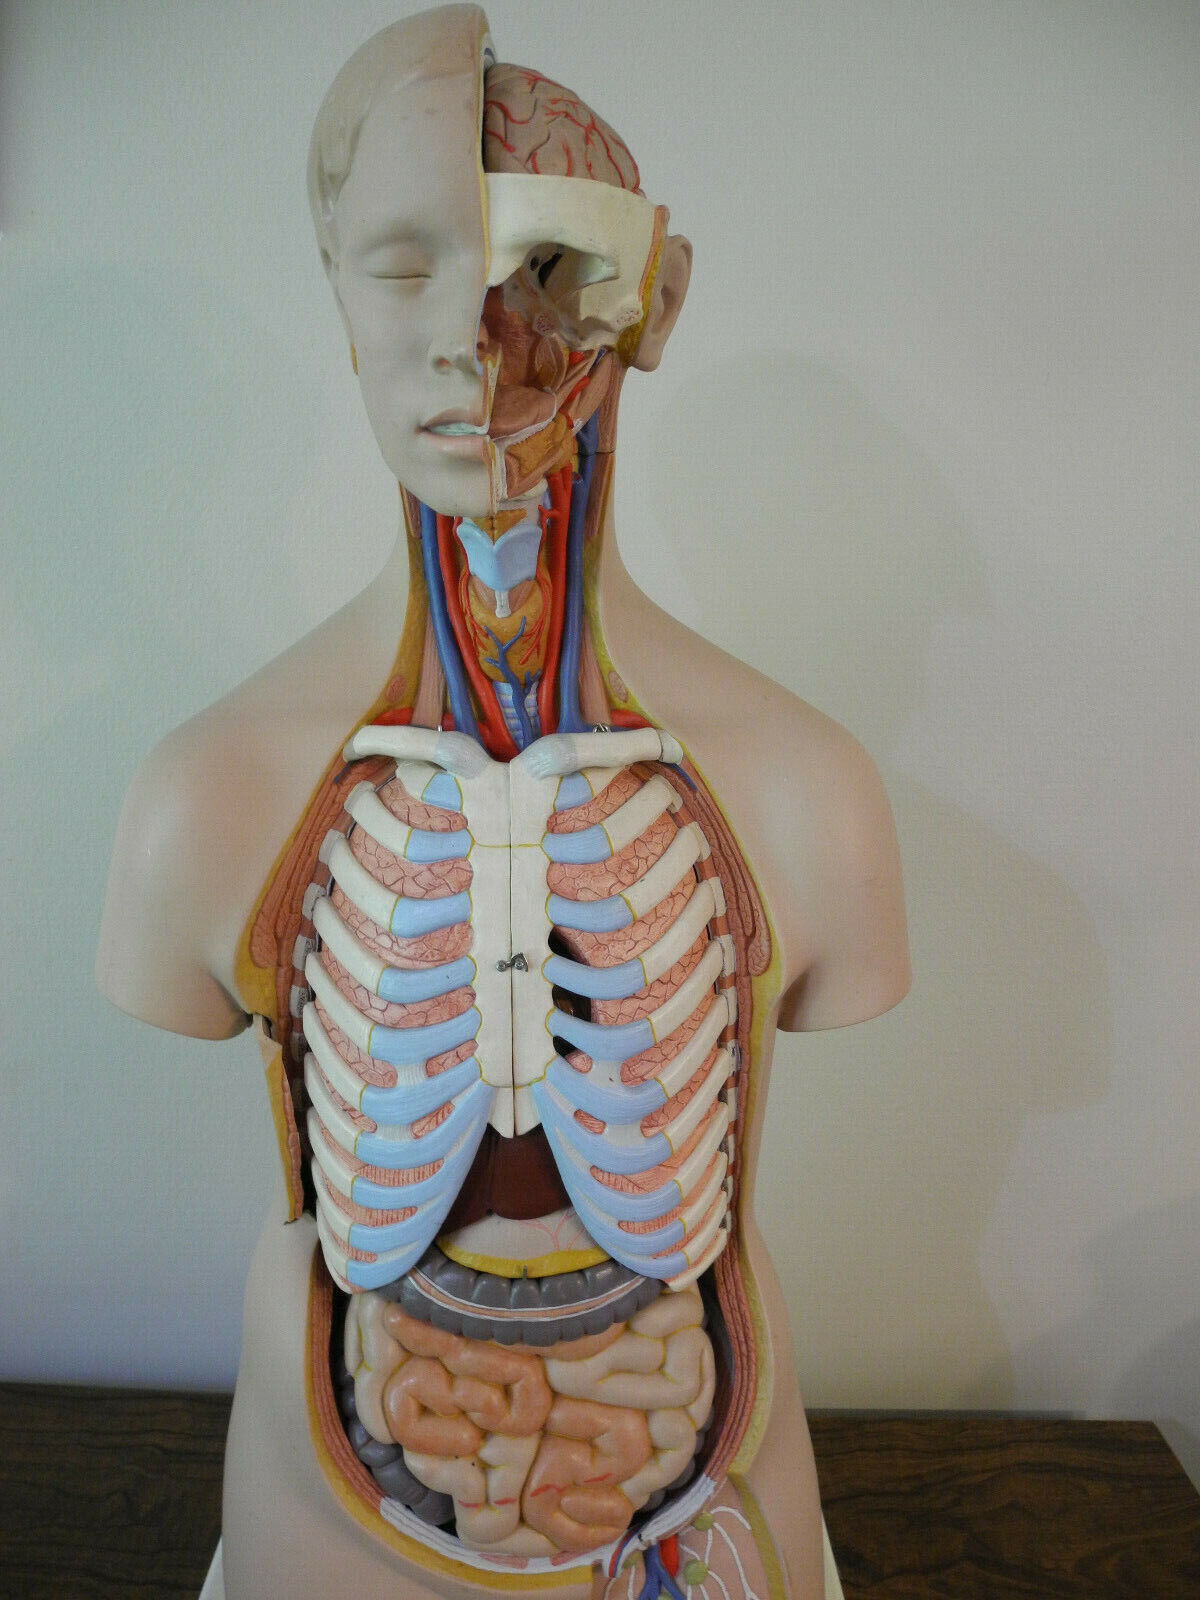 3B Scientific Classic 16 Part Torso B11 With Book In Many Languages - $275.00